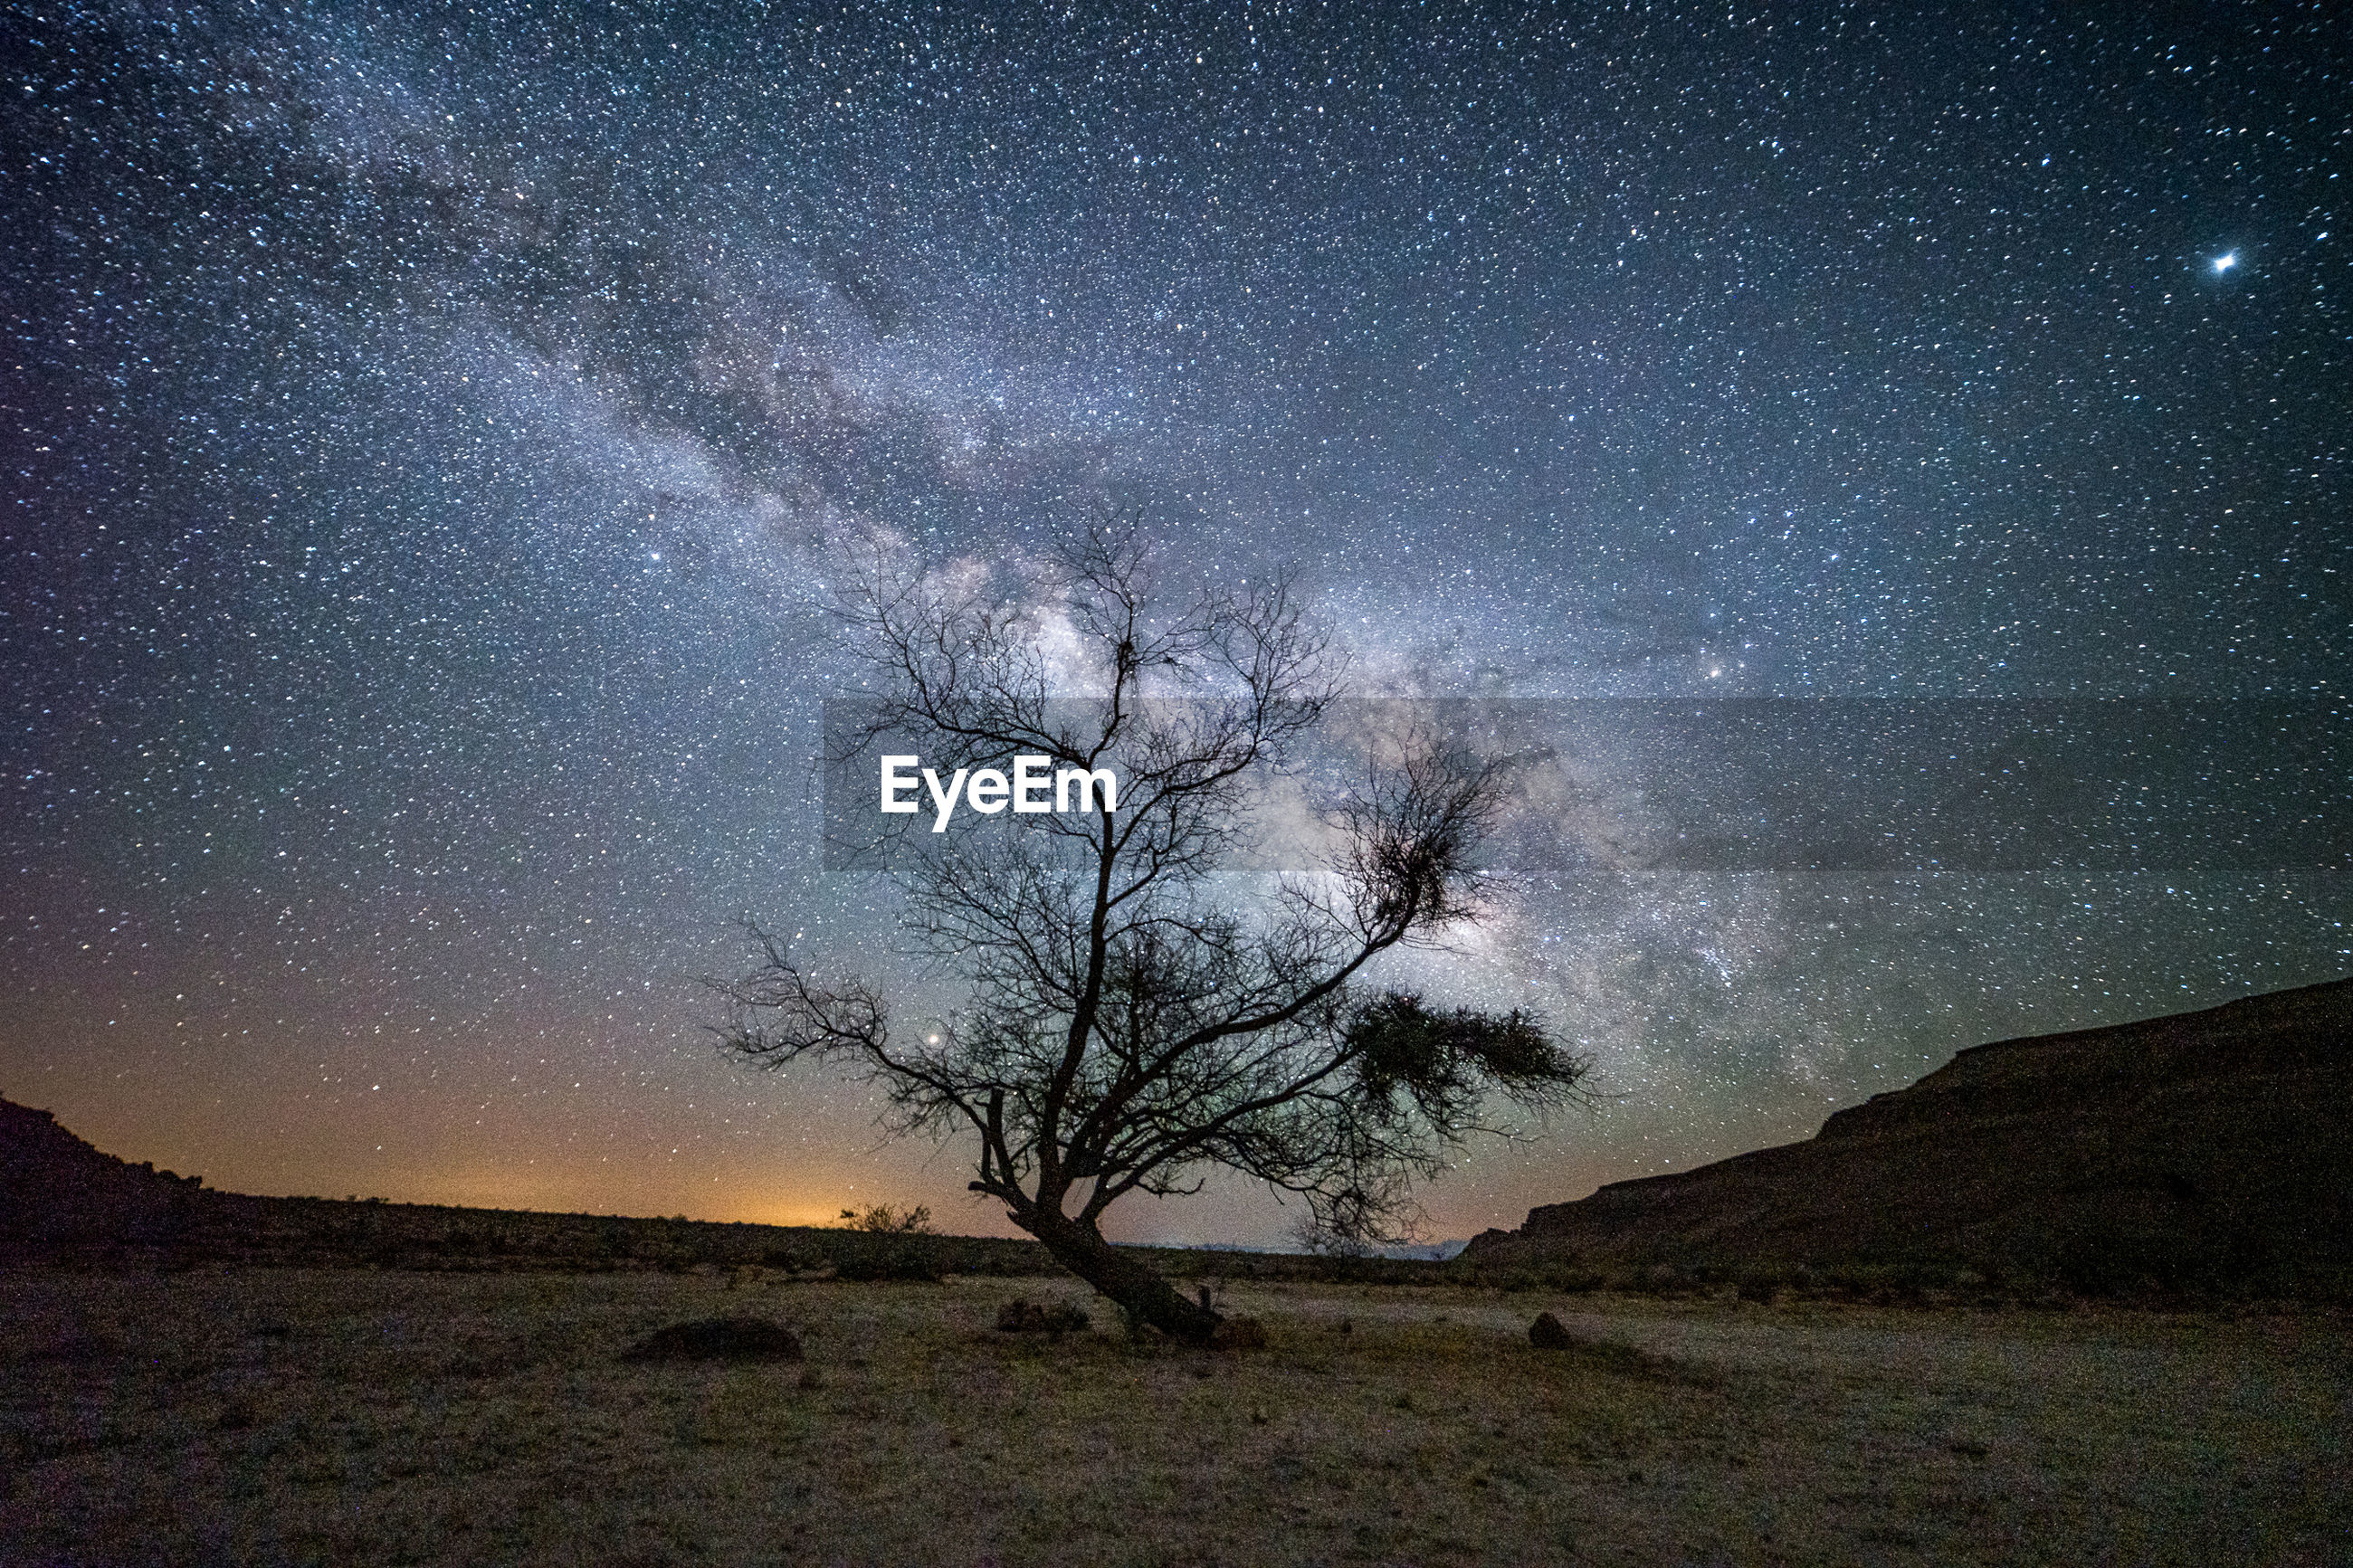 SCENIC VIEW OF TREE AGAINST SKY